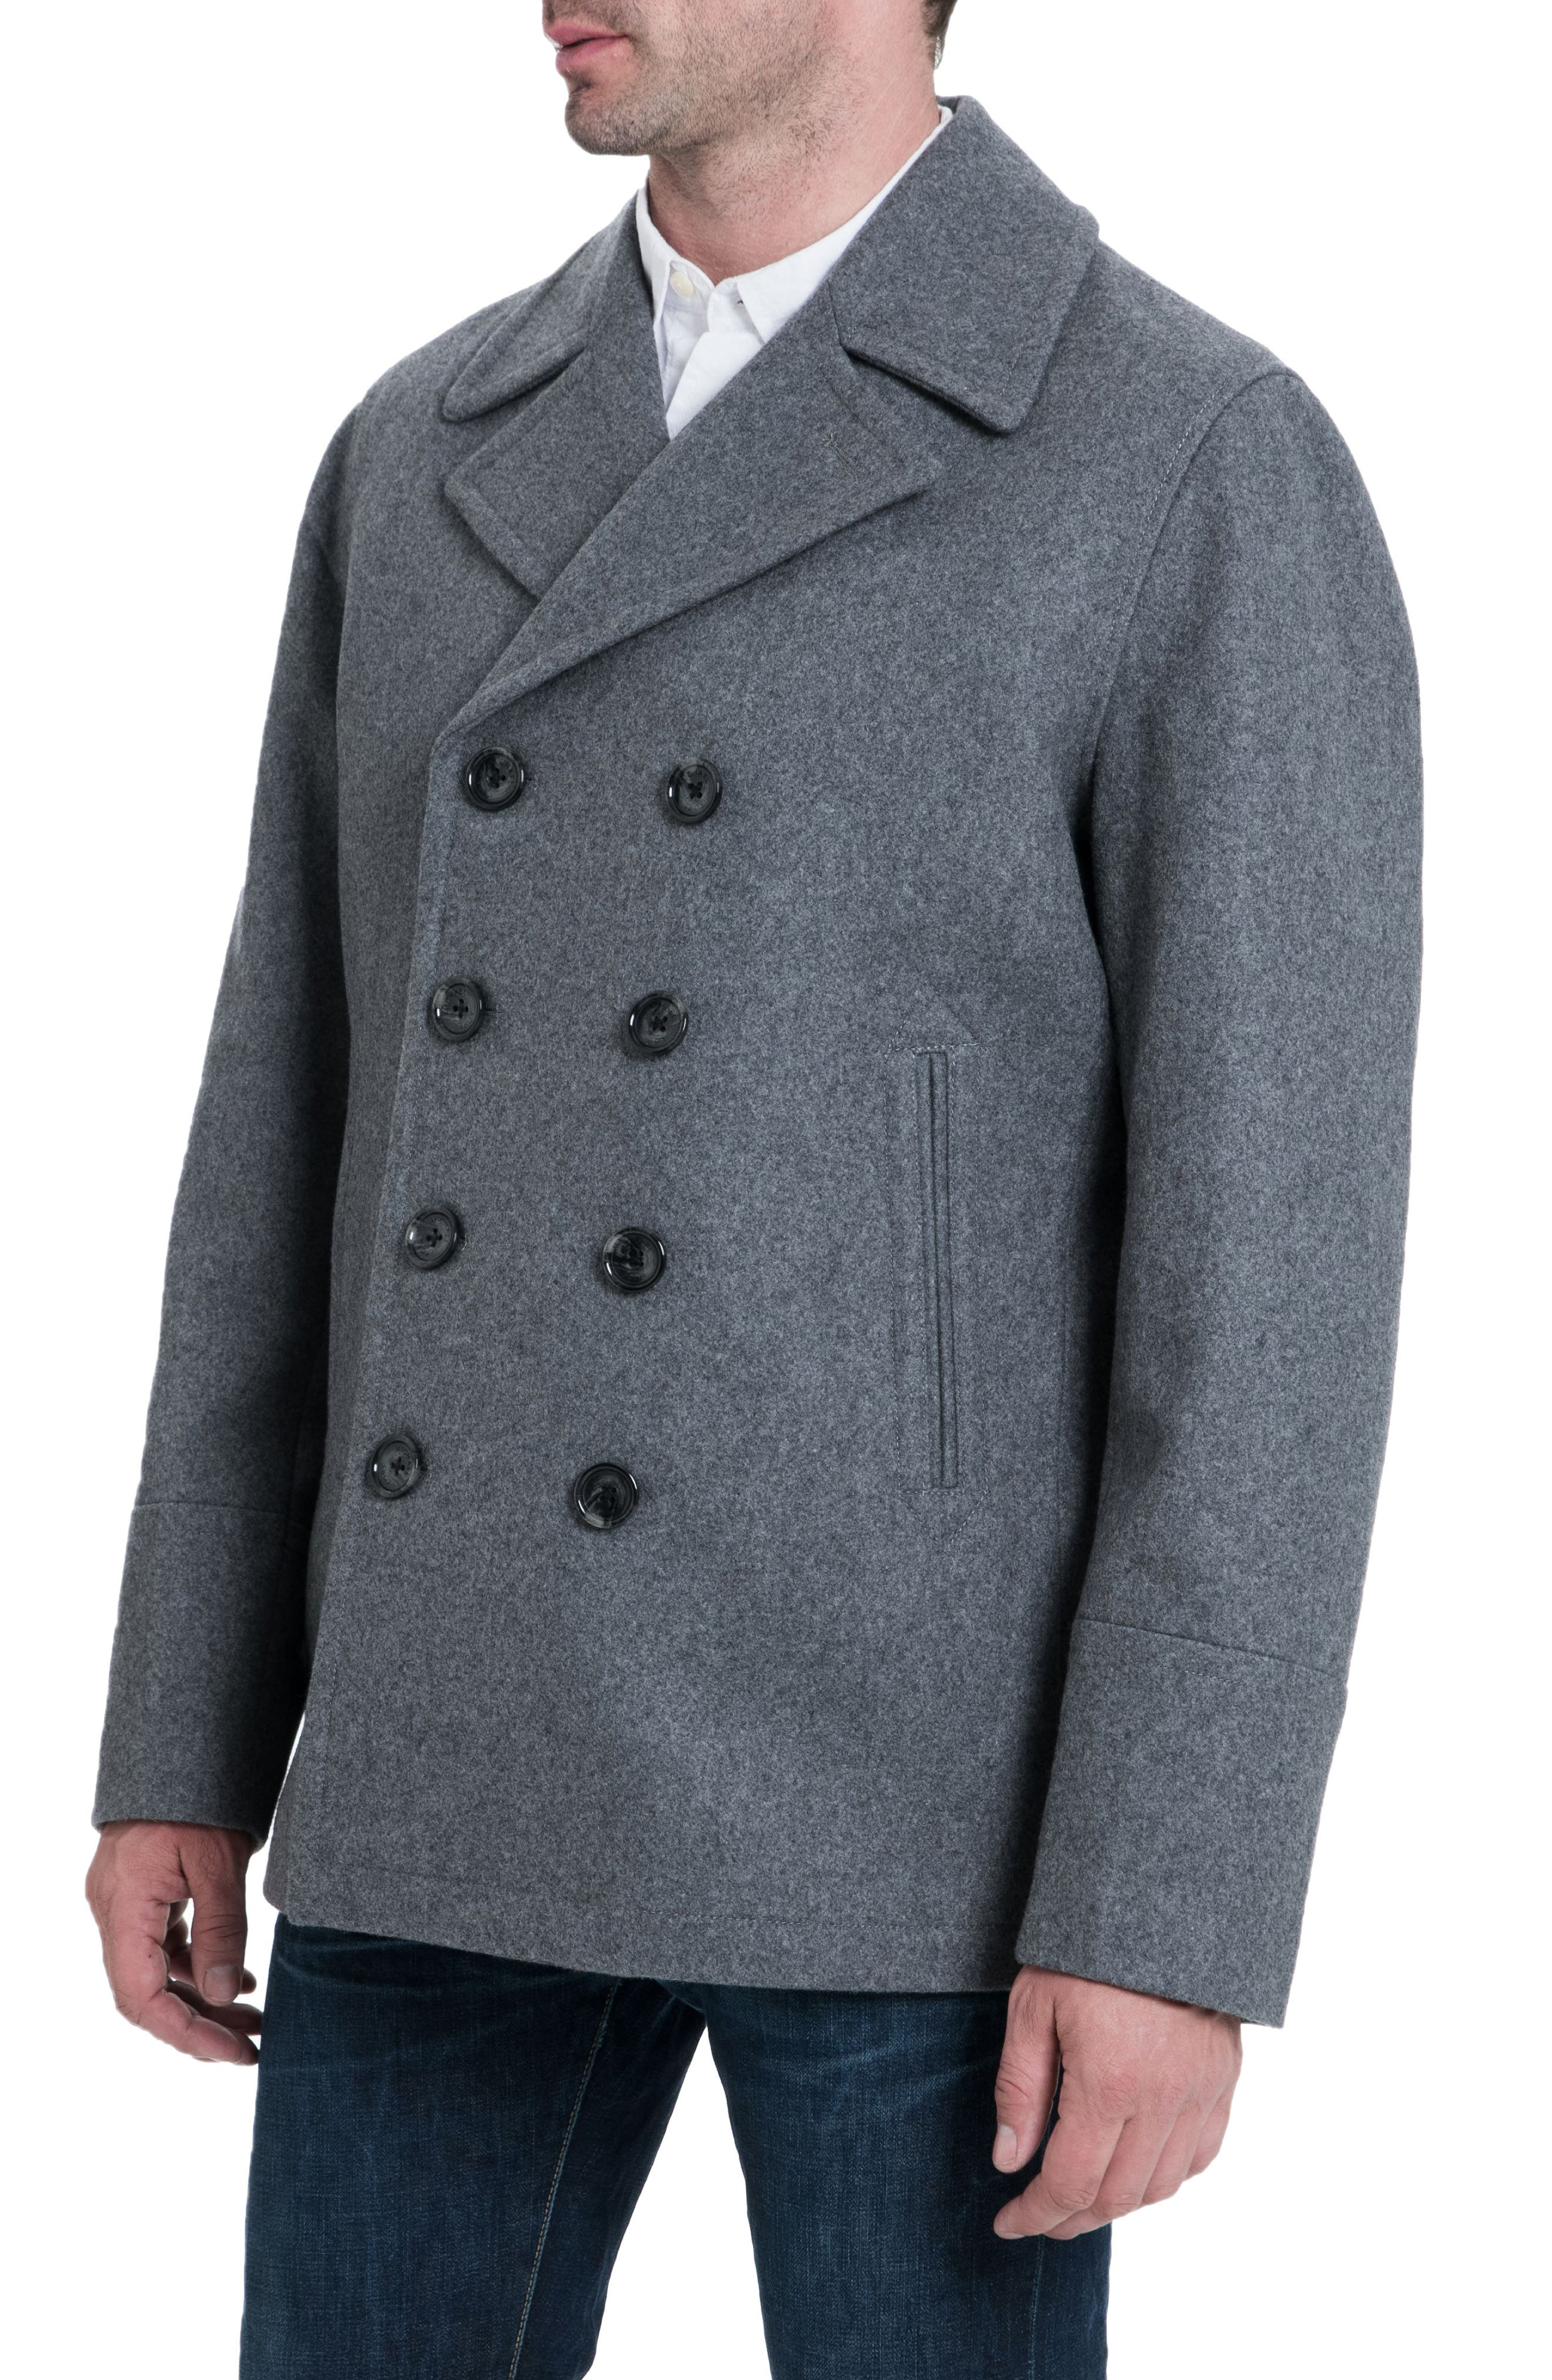 Wool Blend Double Breasted Peacoat,                             Alternate thumbnail 3, color,                             MEDIUM GREY HEATHER